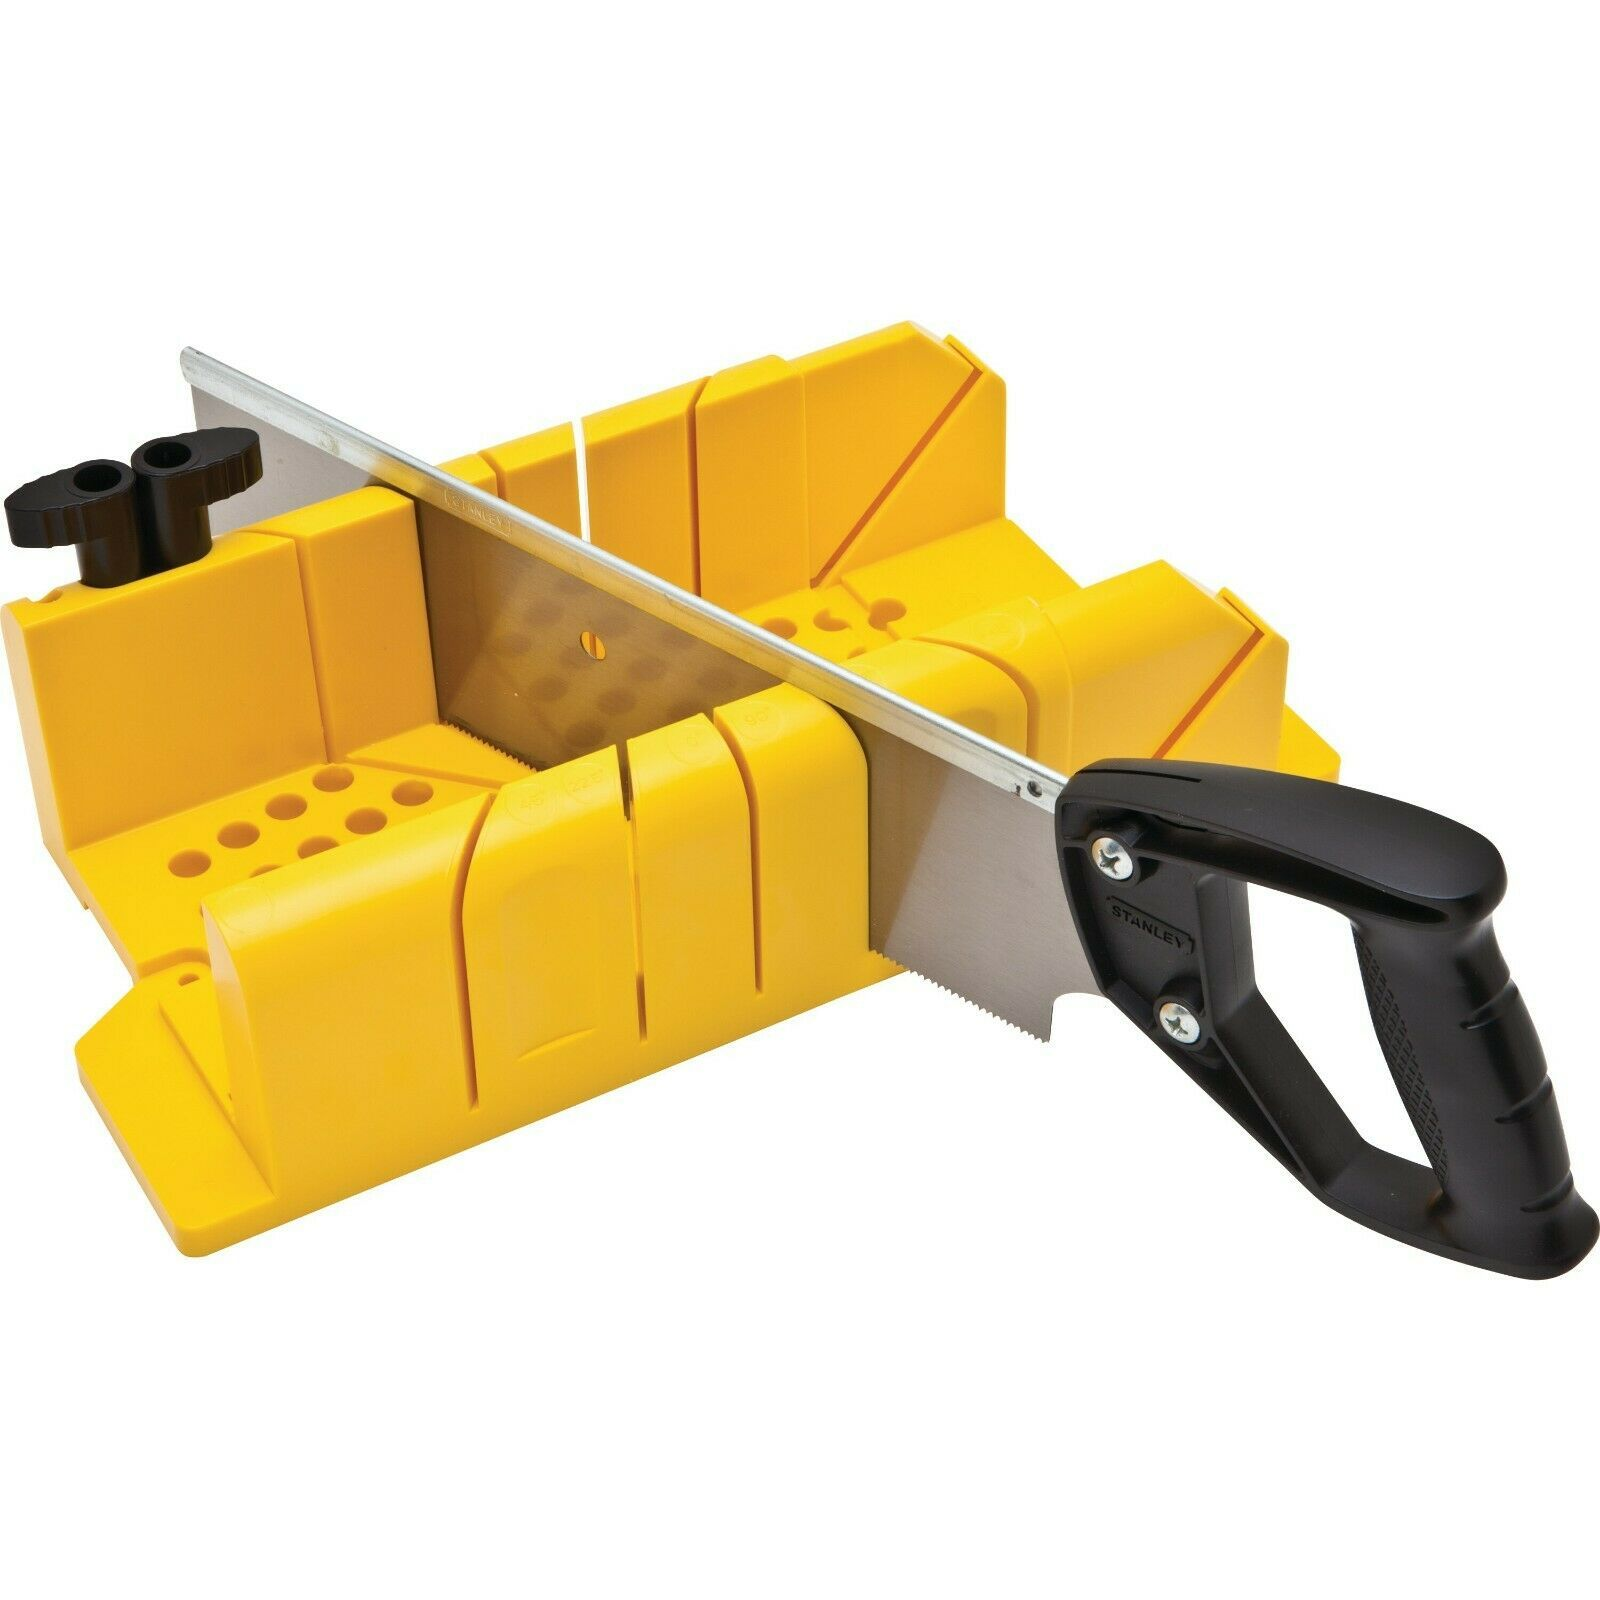 Stanley 20-600 Clamping Miter Box With Saw - $24.74